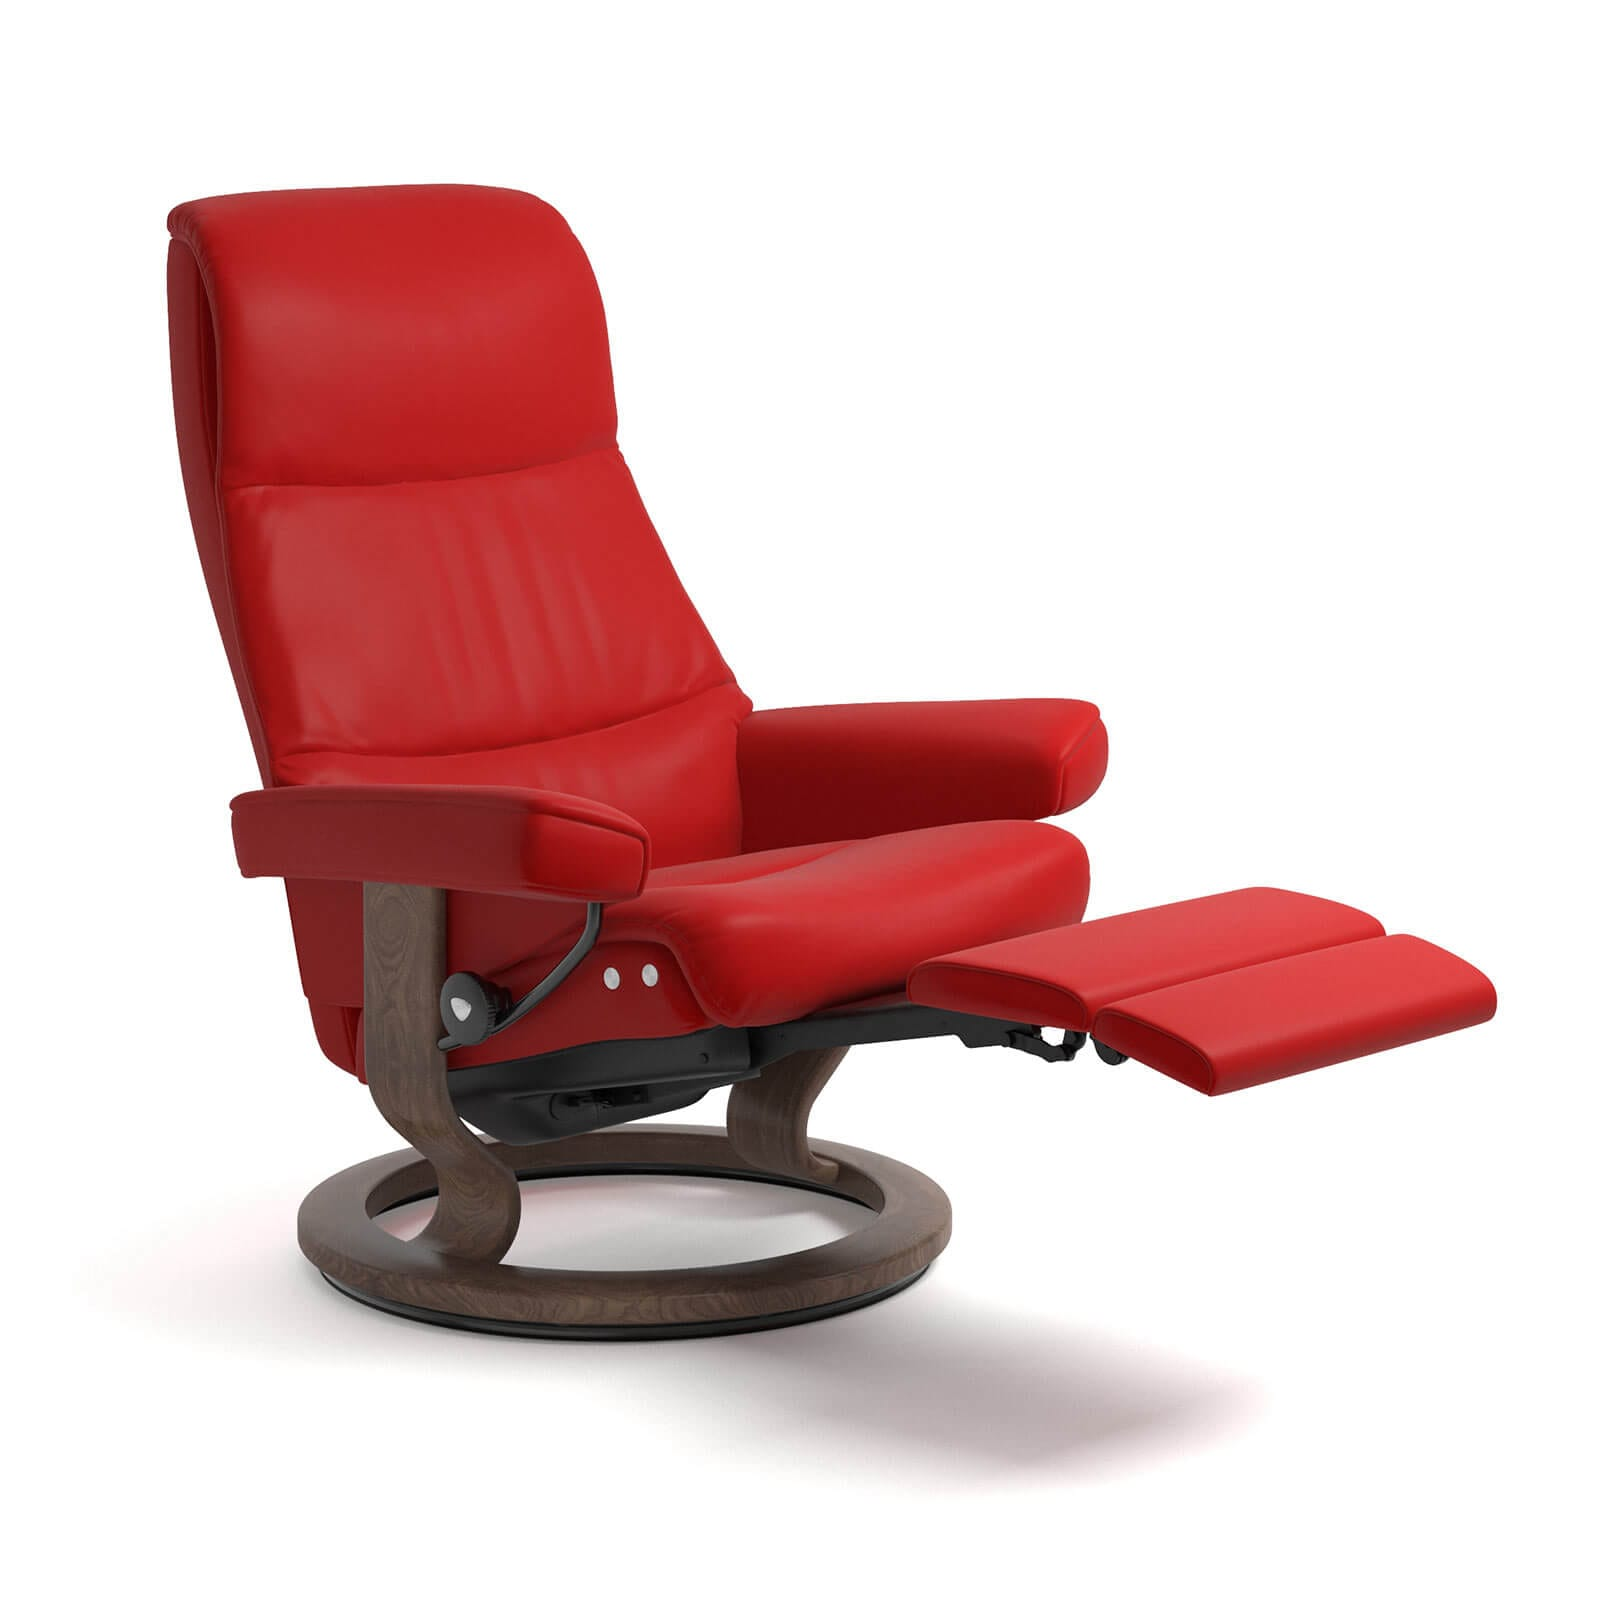 Relaxsessel Mit Liegefunktion Stressless Sessel View Legcomfort Leder Batick In Chilli Red Gestell Walnuss